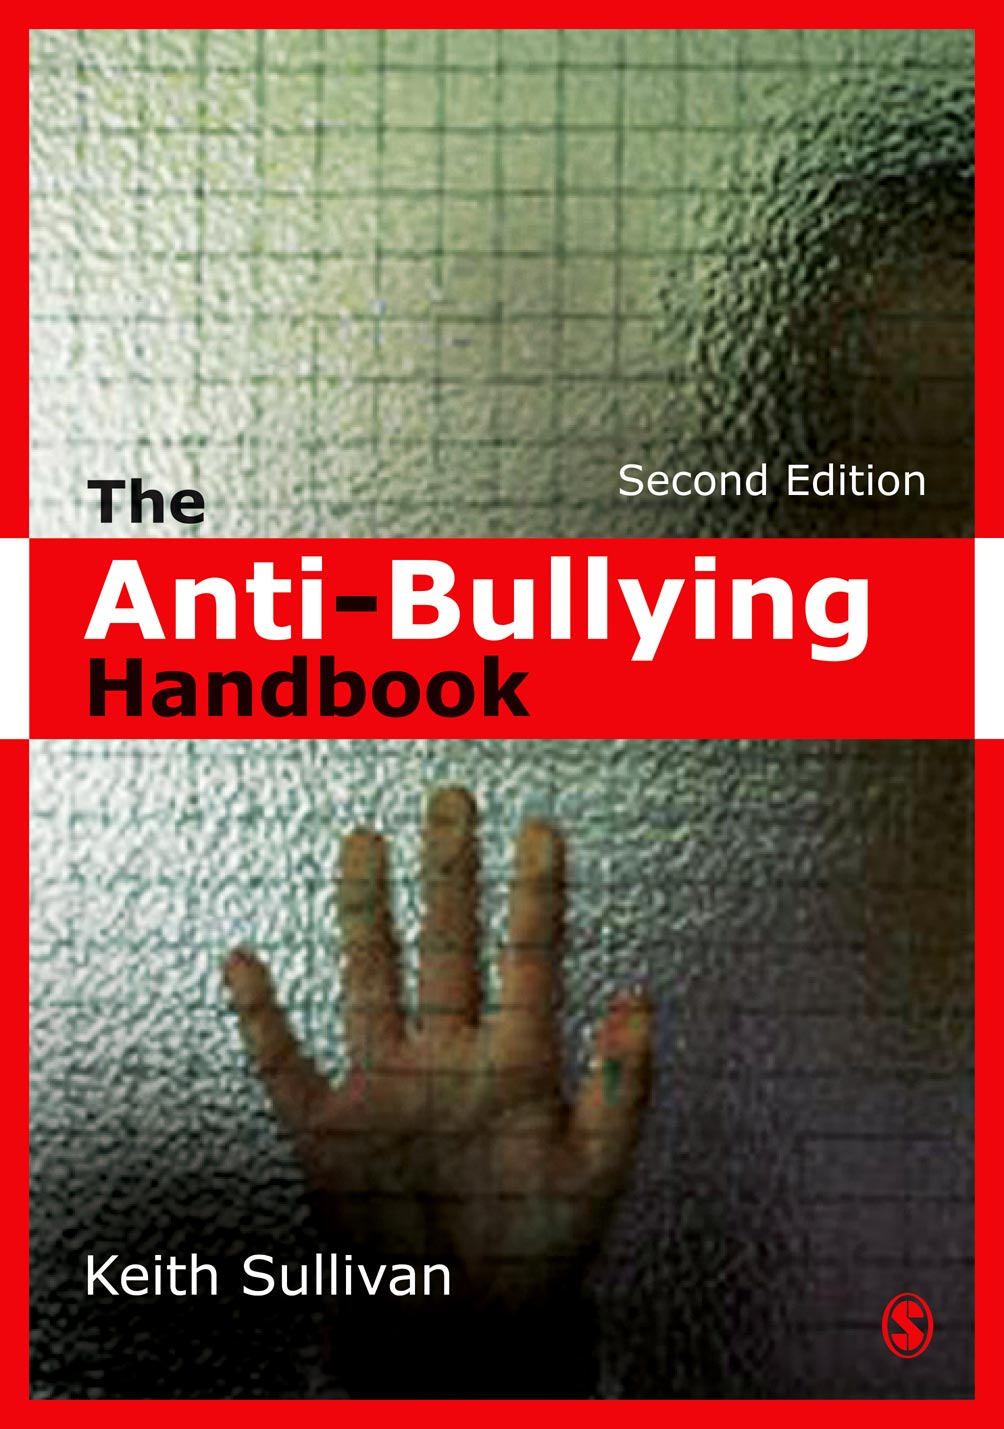 The Anti-Bullying Handbook